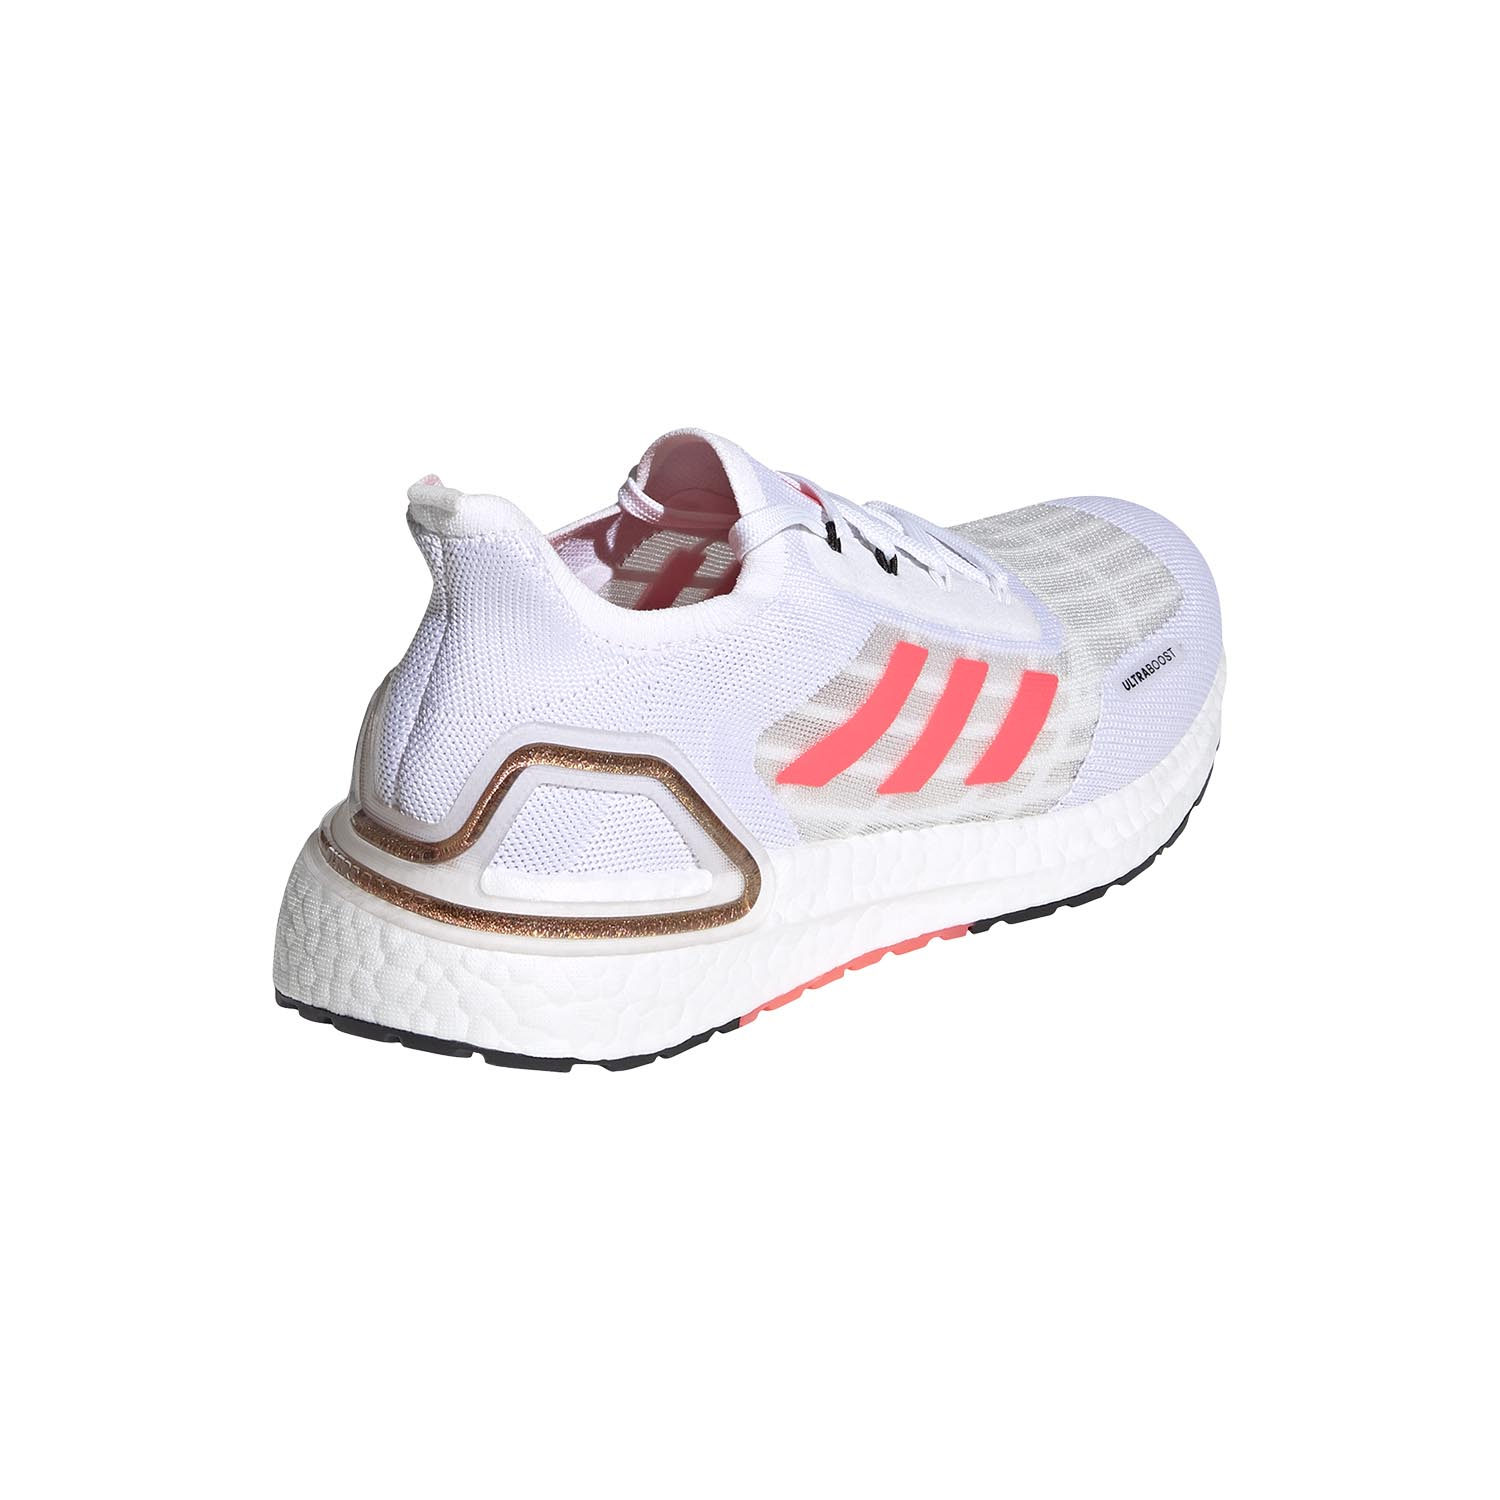 Adidas Ultraboost S.RDY - Ftwr White/Signal Pink/Core Black